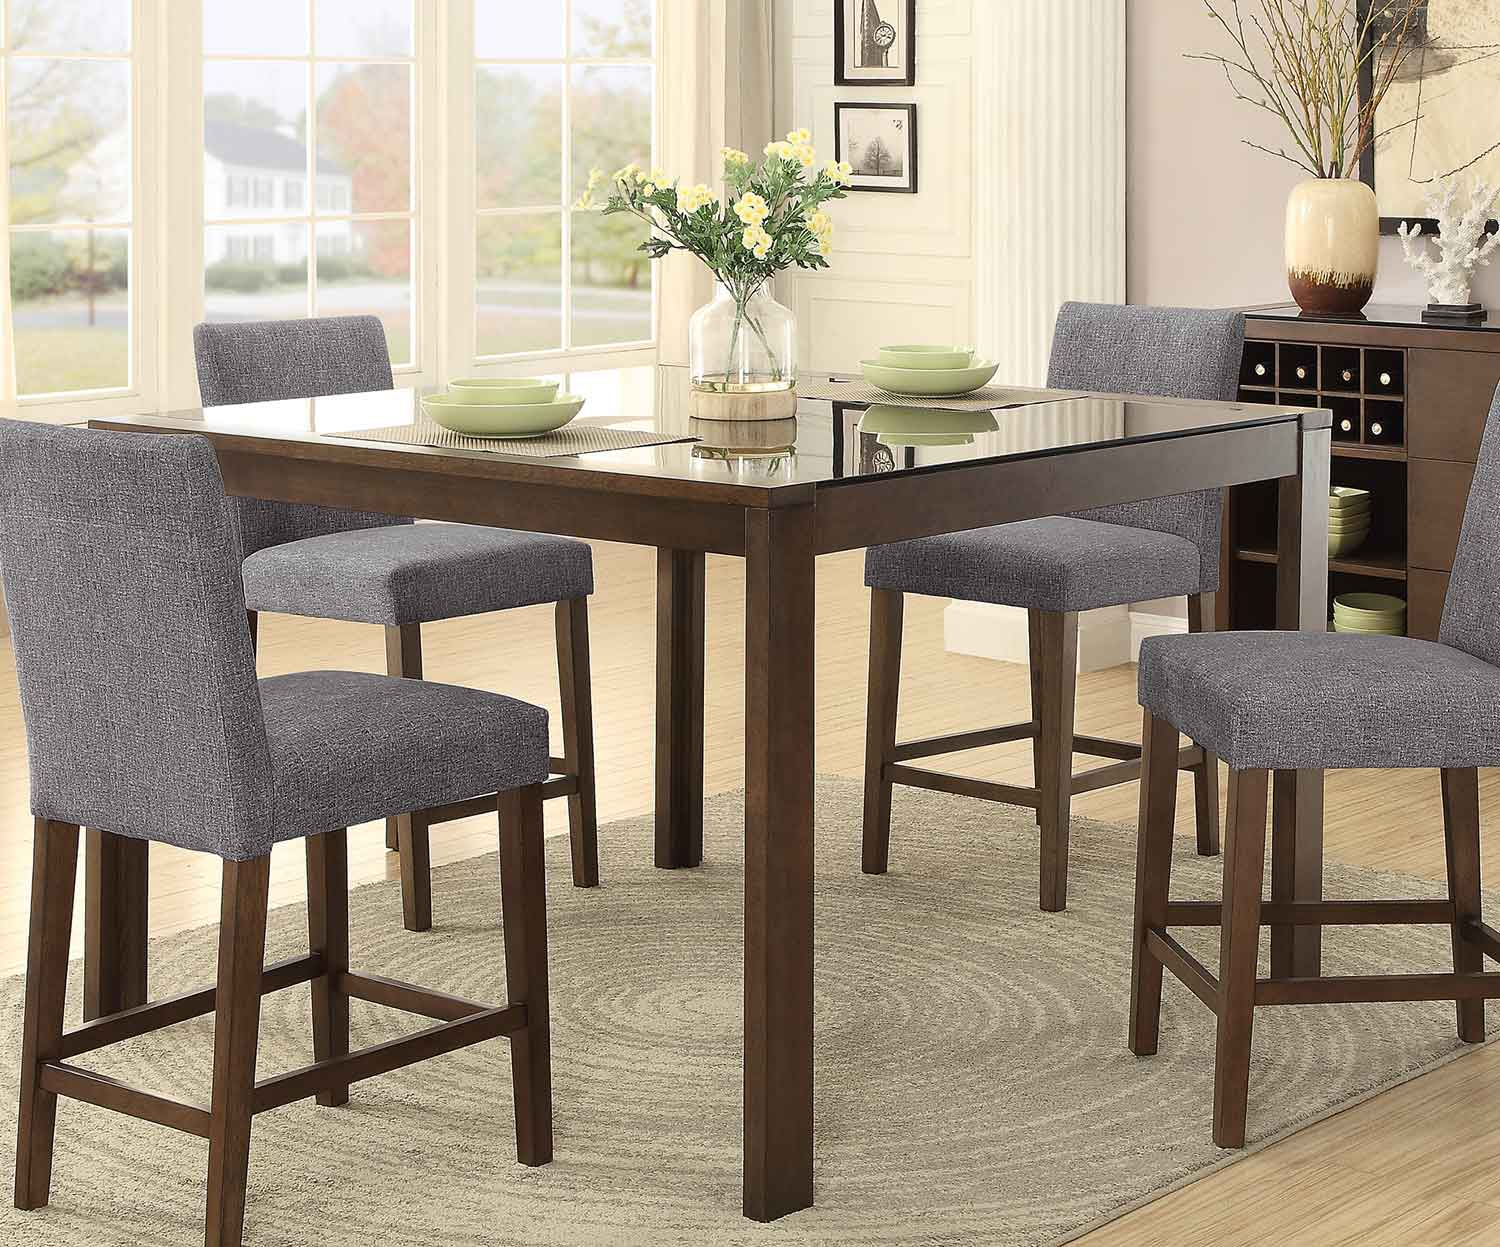 dining table with insert kemper fielding counter height dining table w black glass insert by homelegance